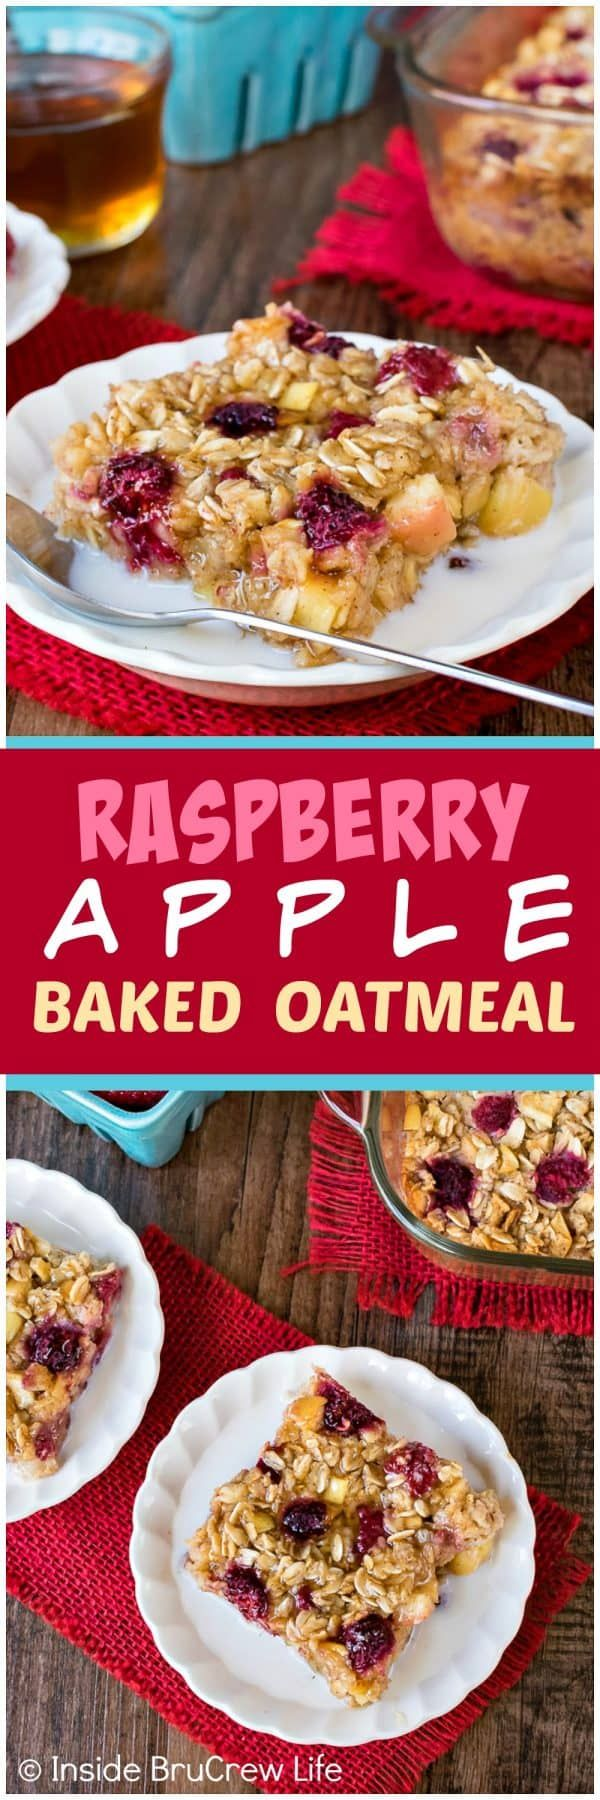 Raspberry Apple Baked Oatmeal - make a pan of baked oatmeal loaded with fruit and honey for an easy breakfast choice. Great recipe to make ahead of time for busy mornings! ~ Inside BruCrew Life